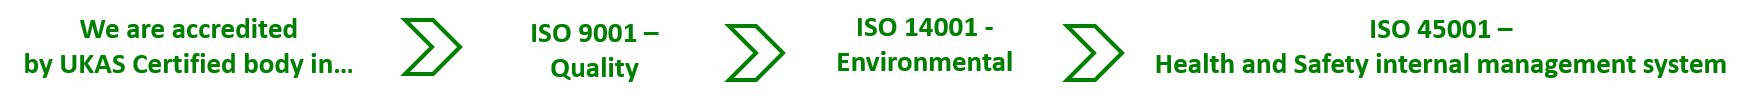 Environmental Products & Services